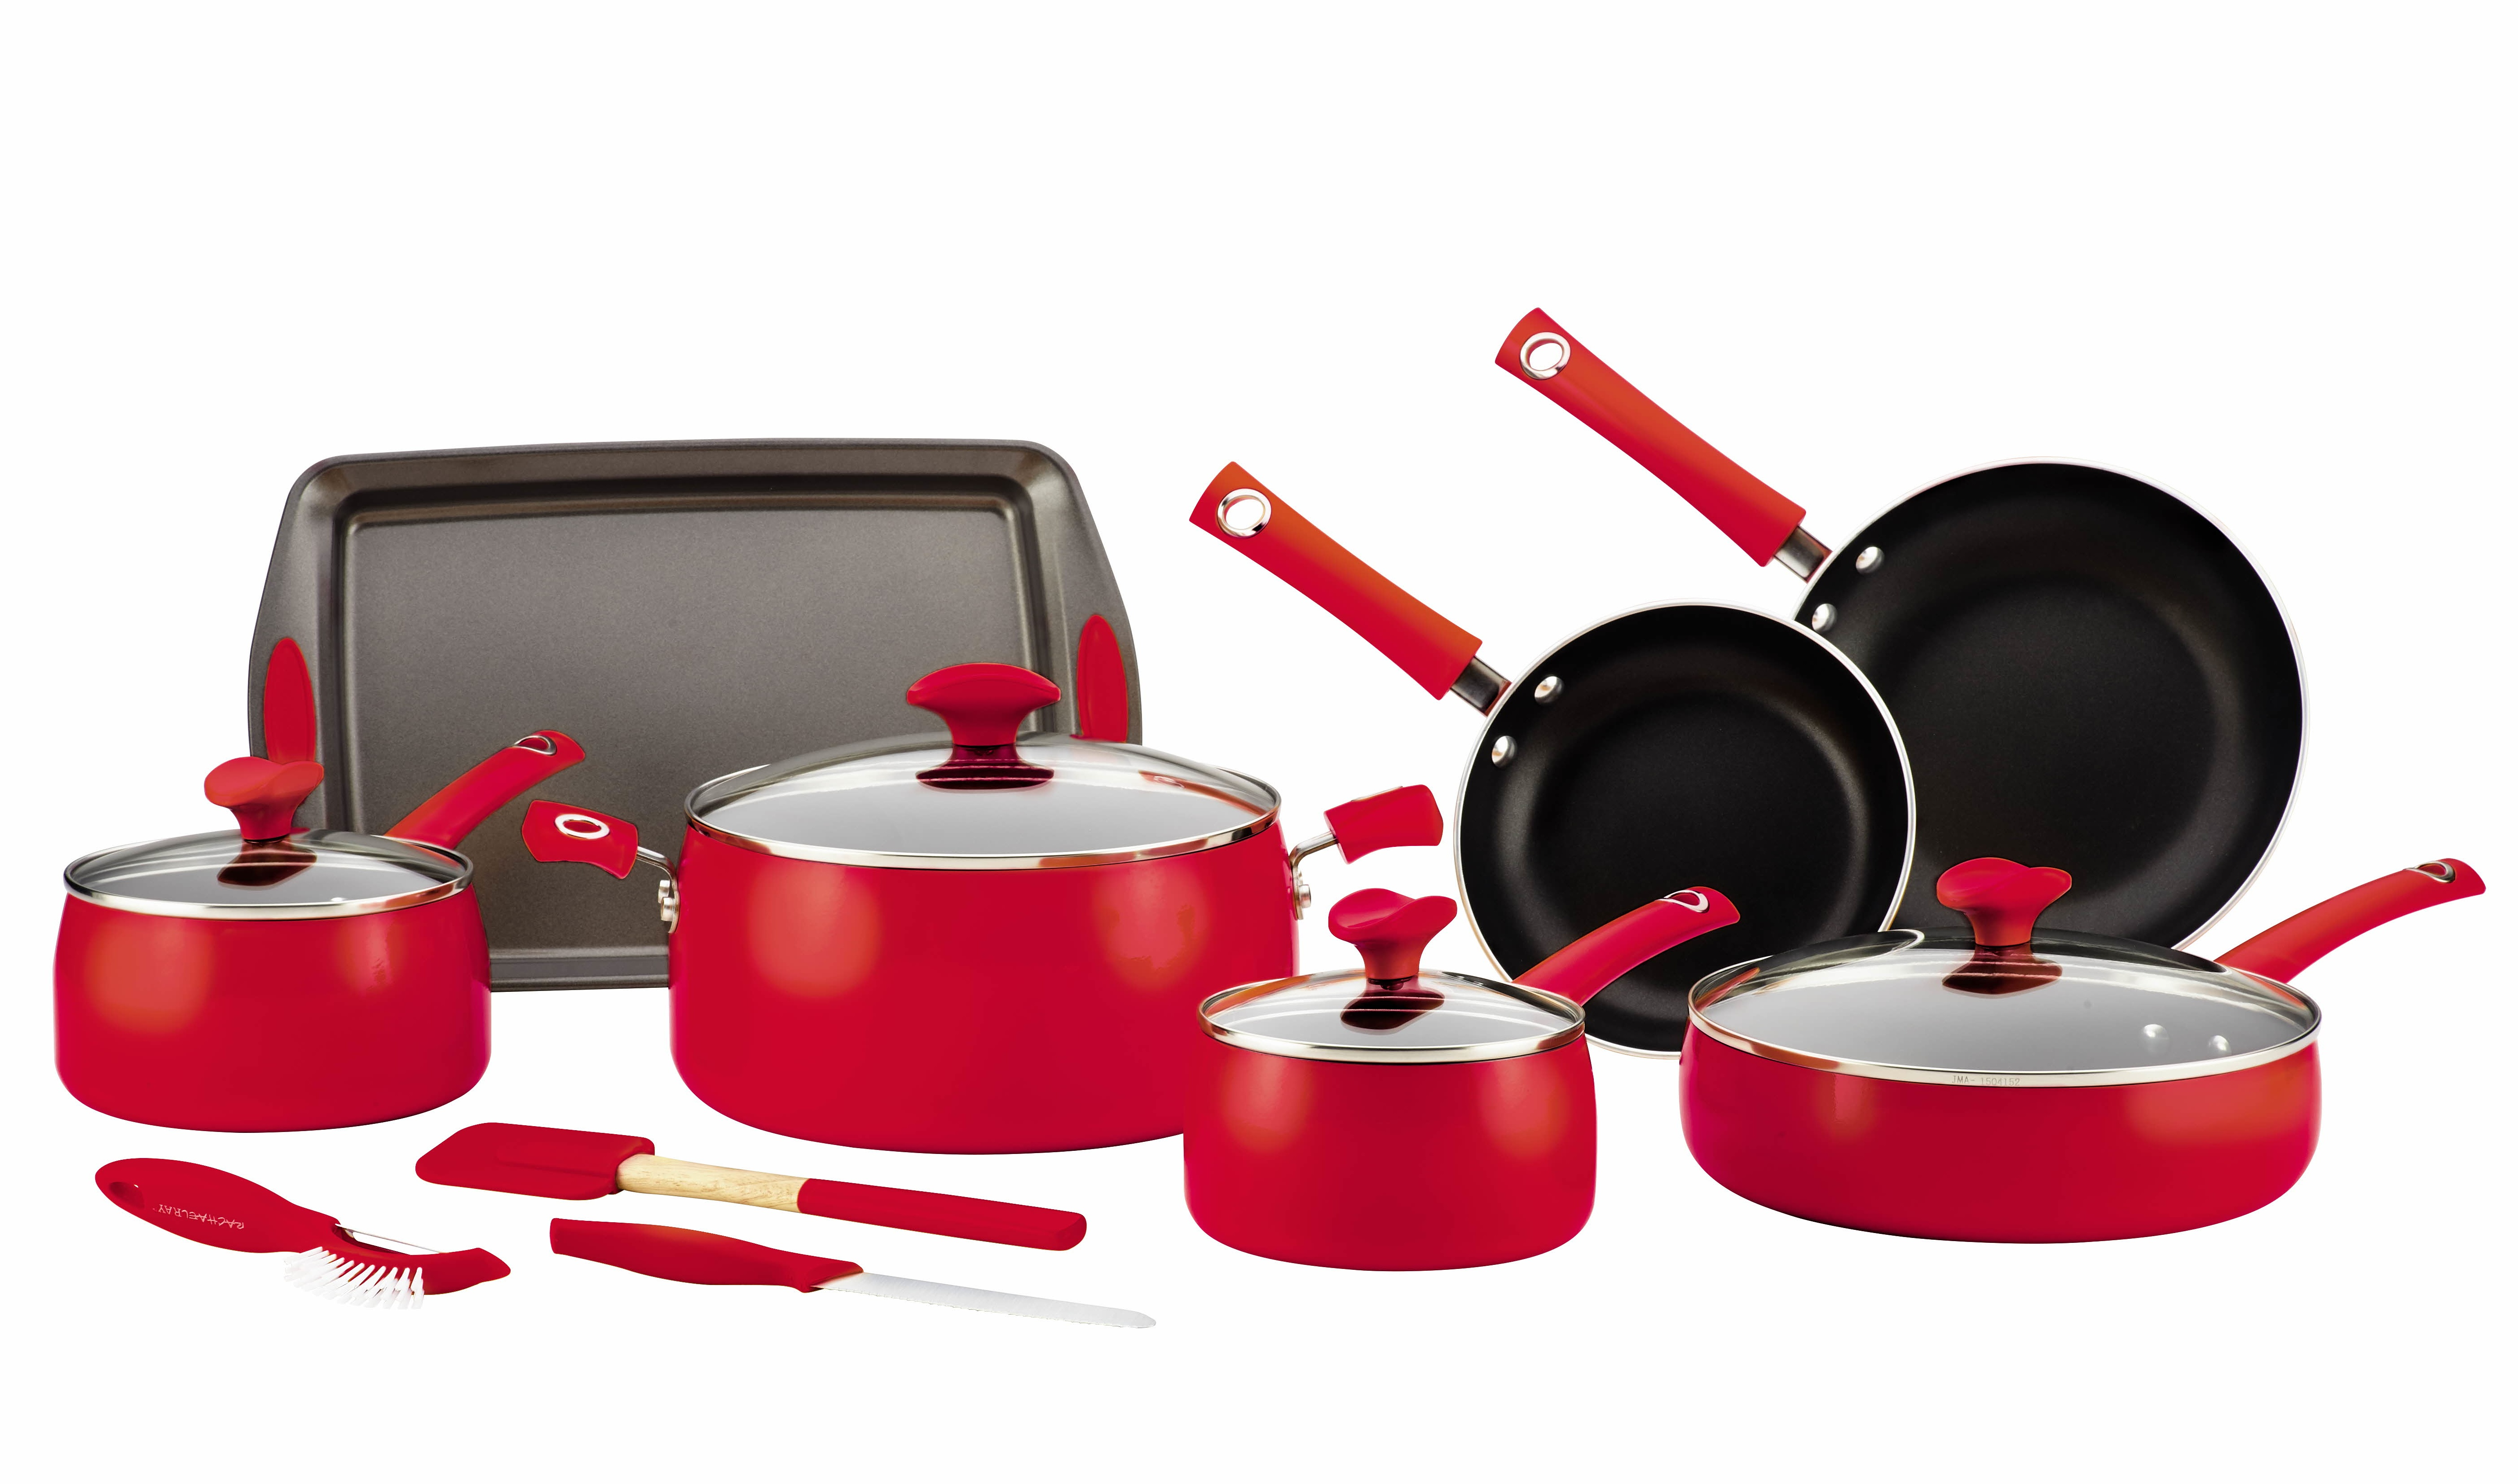 hygge influenced rachel ray cookware photo provided by meyer